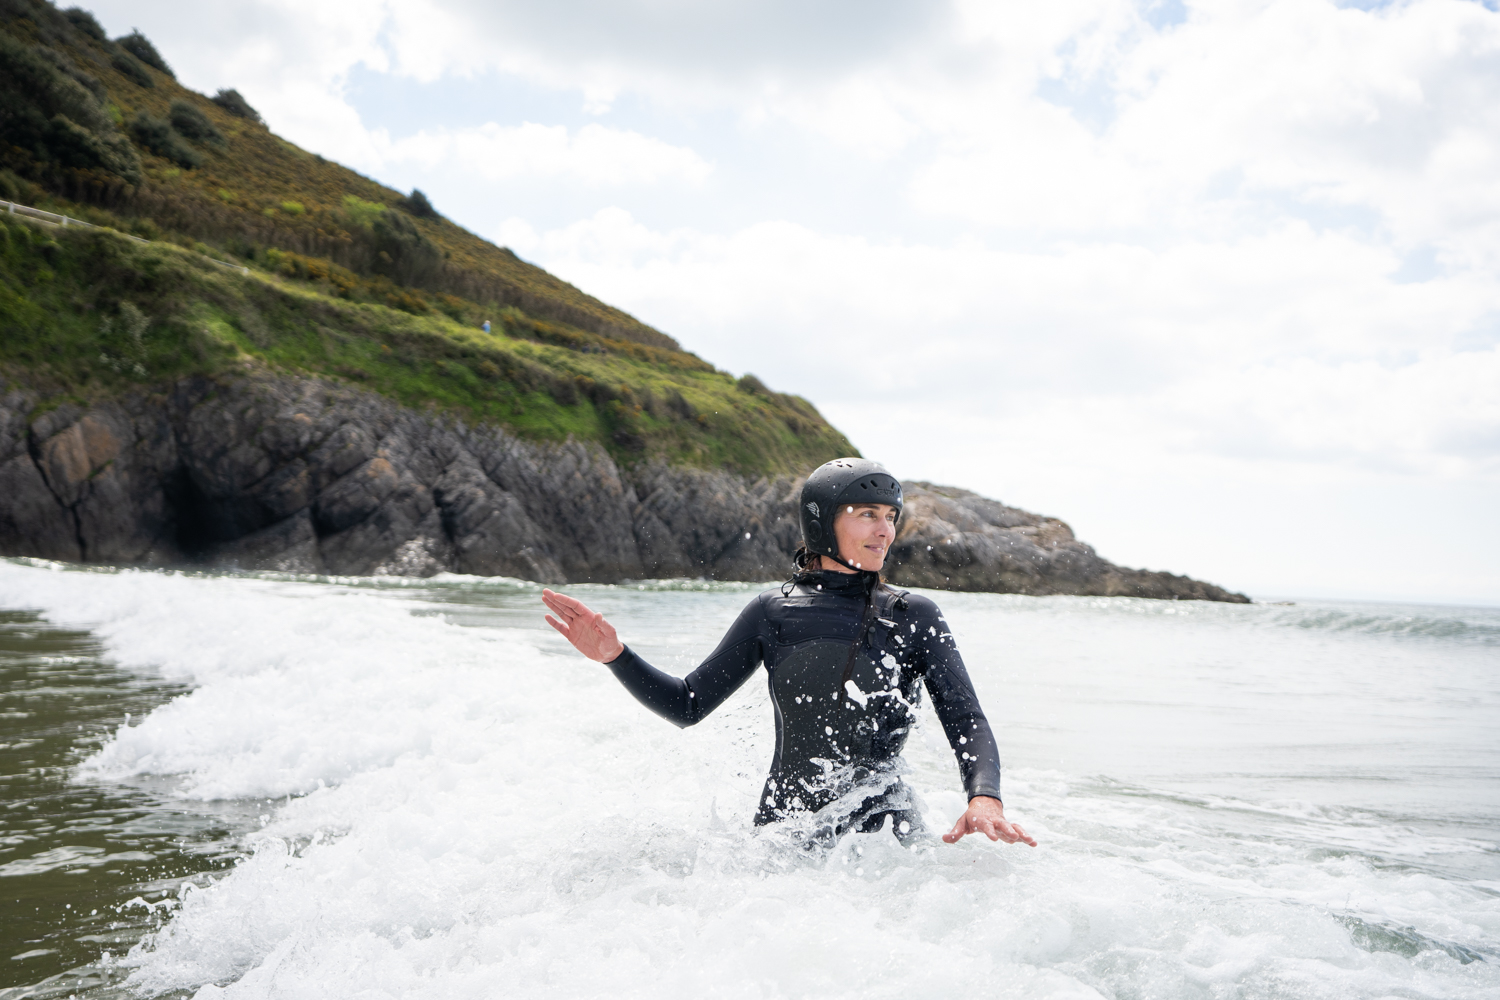 Jack Abbott - Surf Ability - Finisterre-09022.jpg